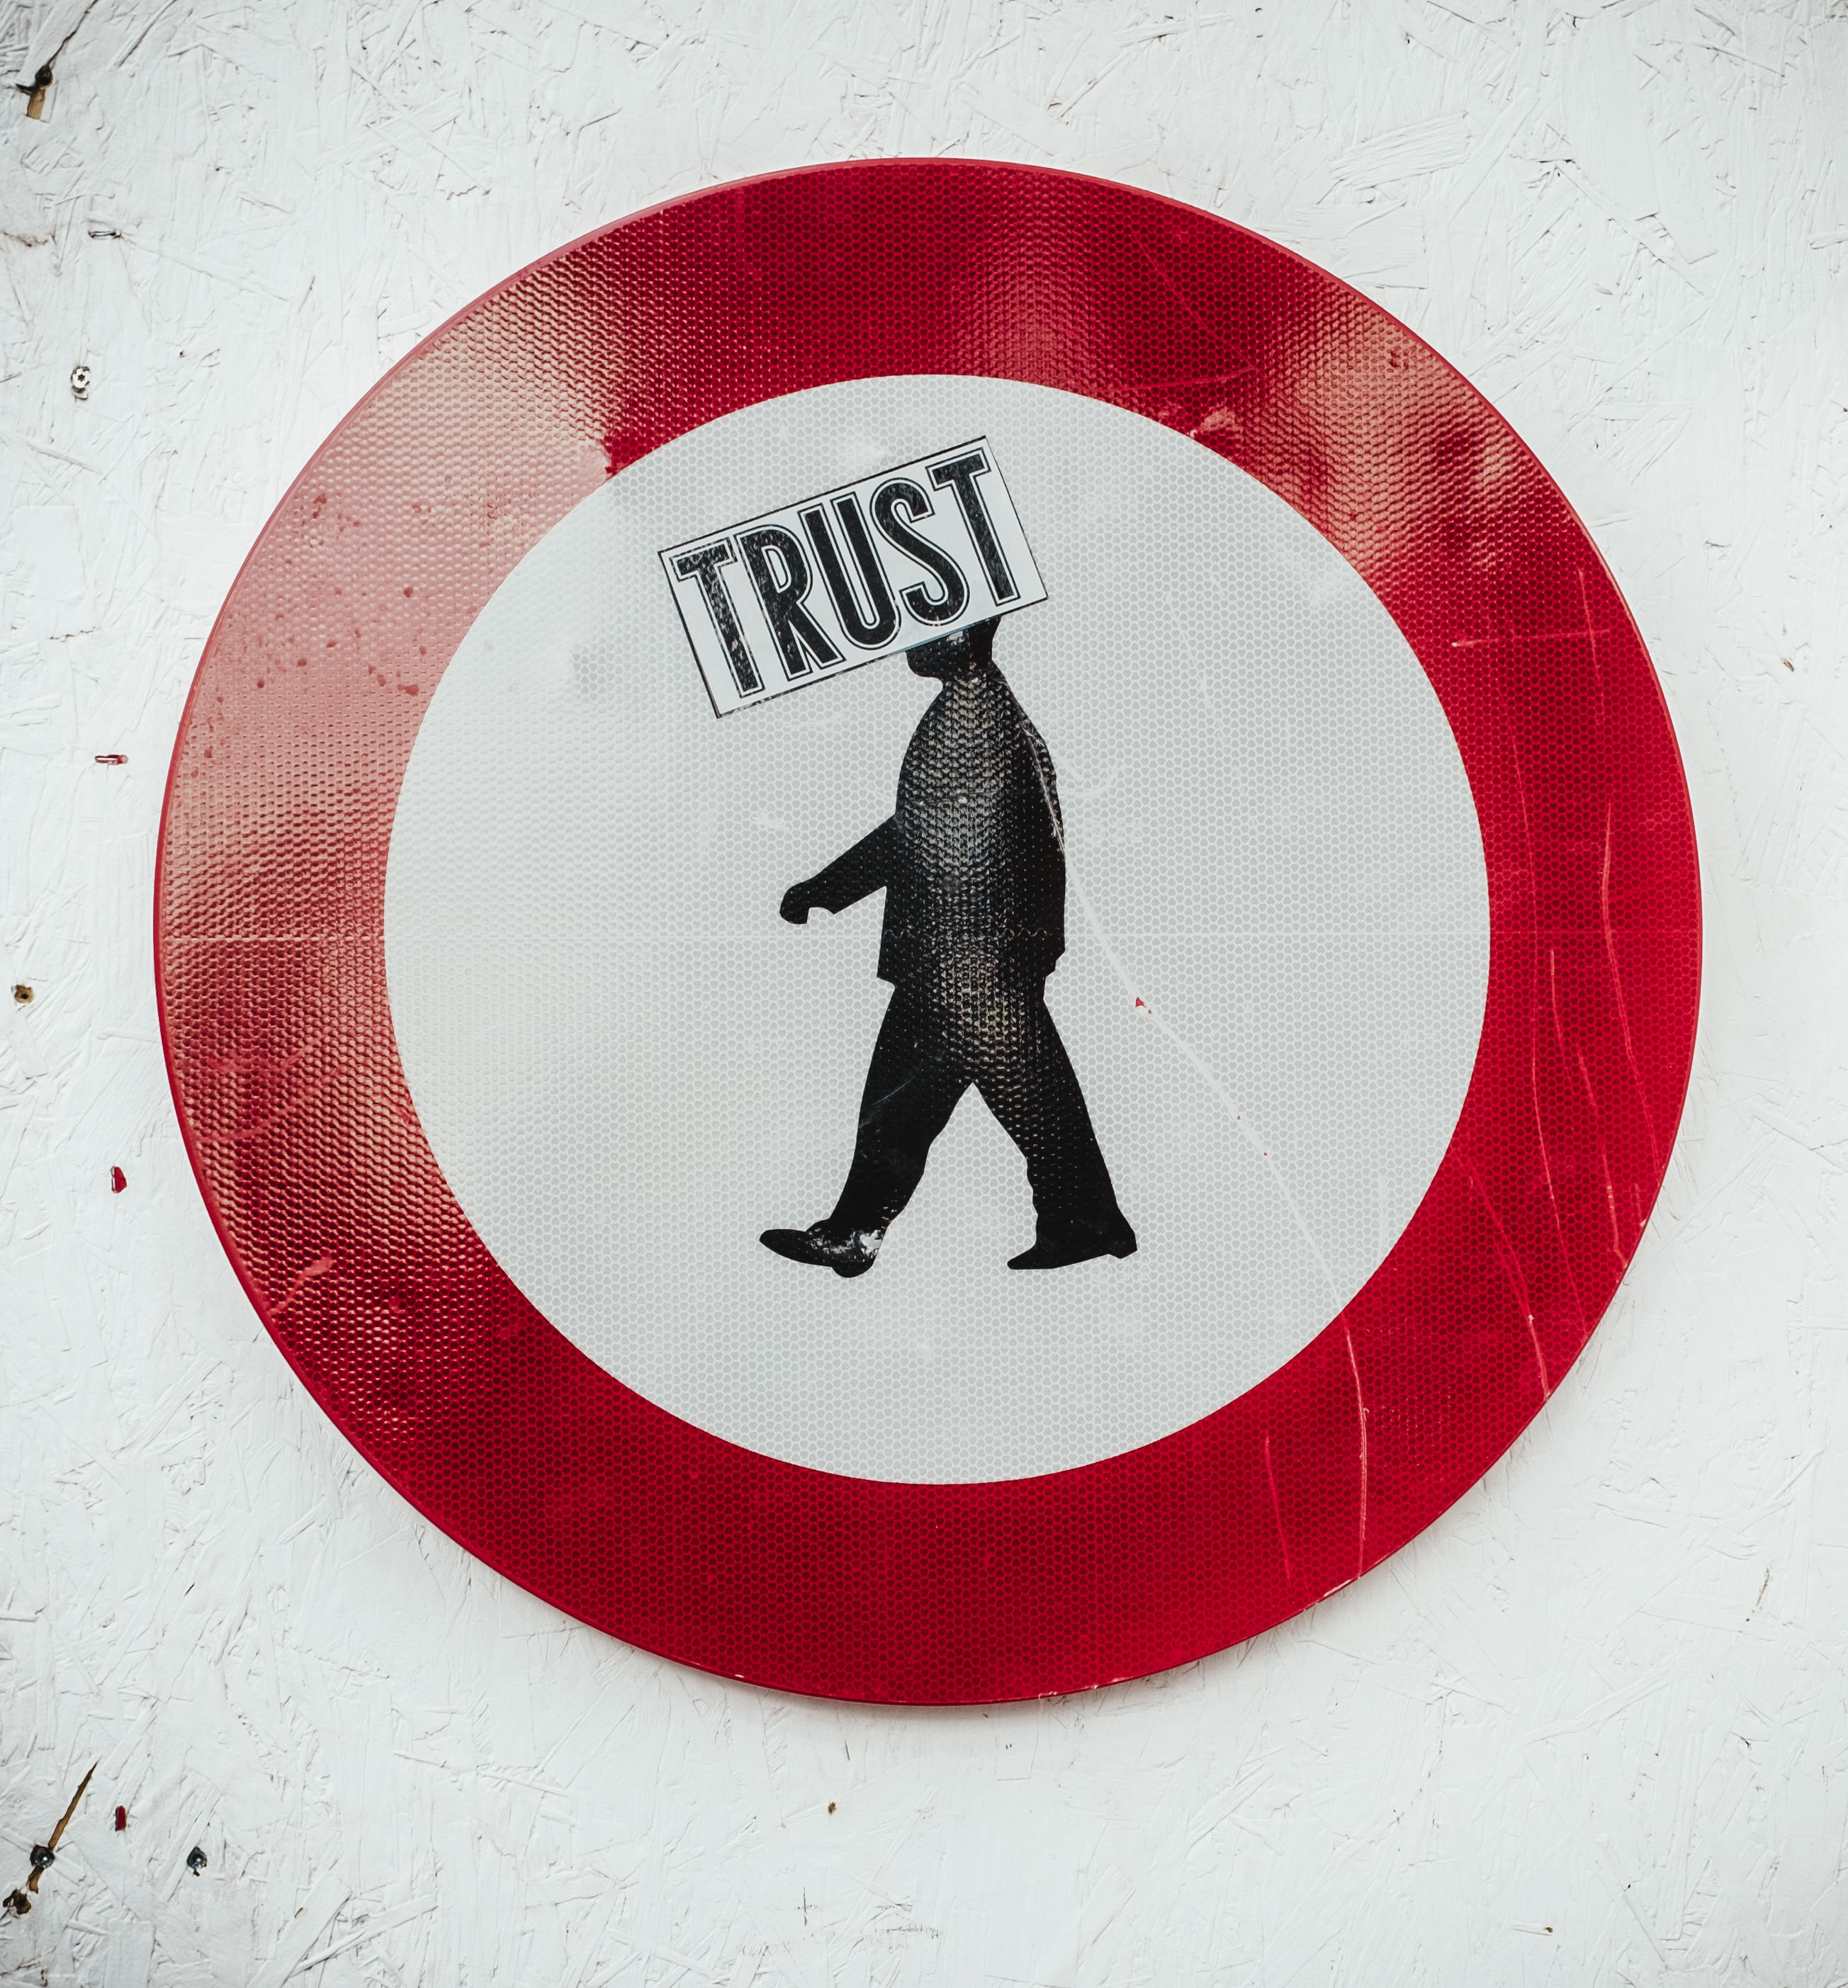 3 Assumptions That Keep Leaders from Building Trust